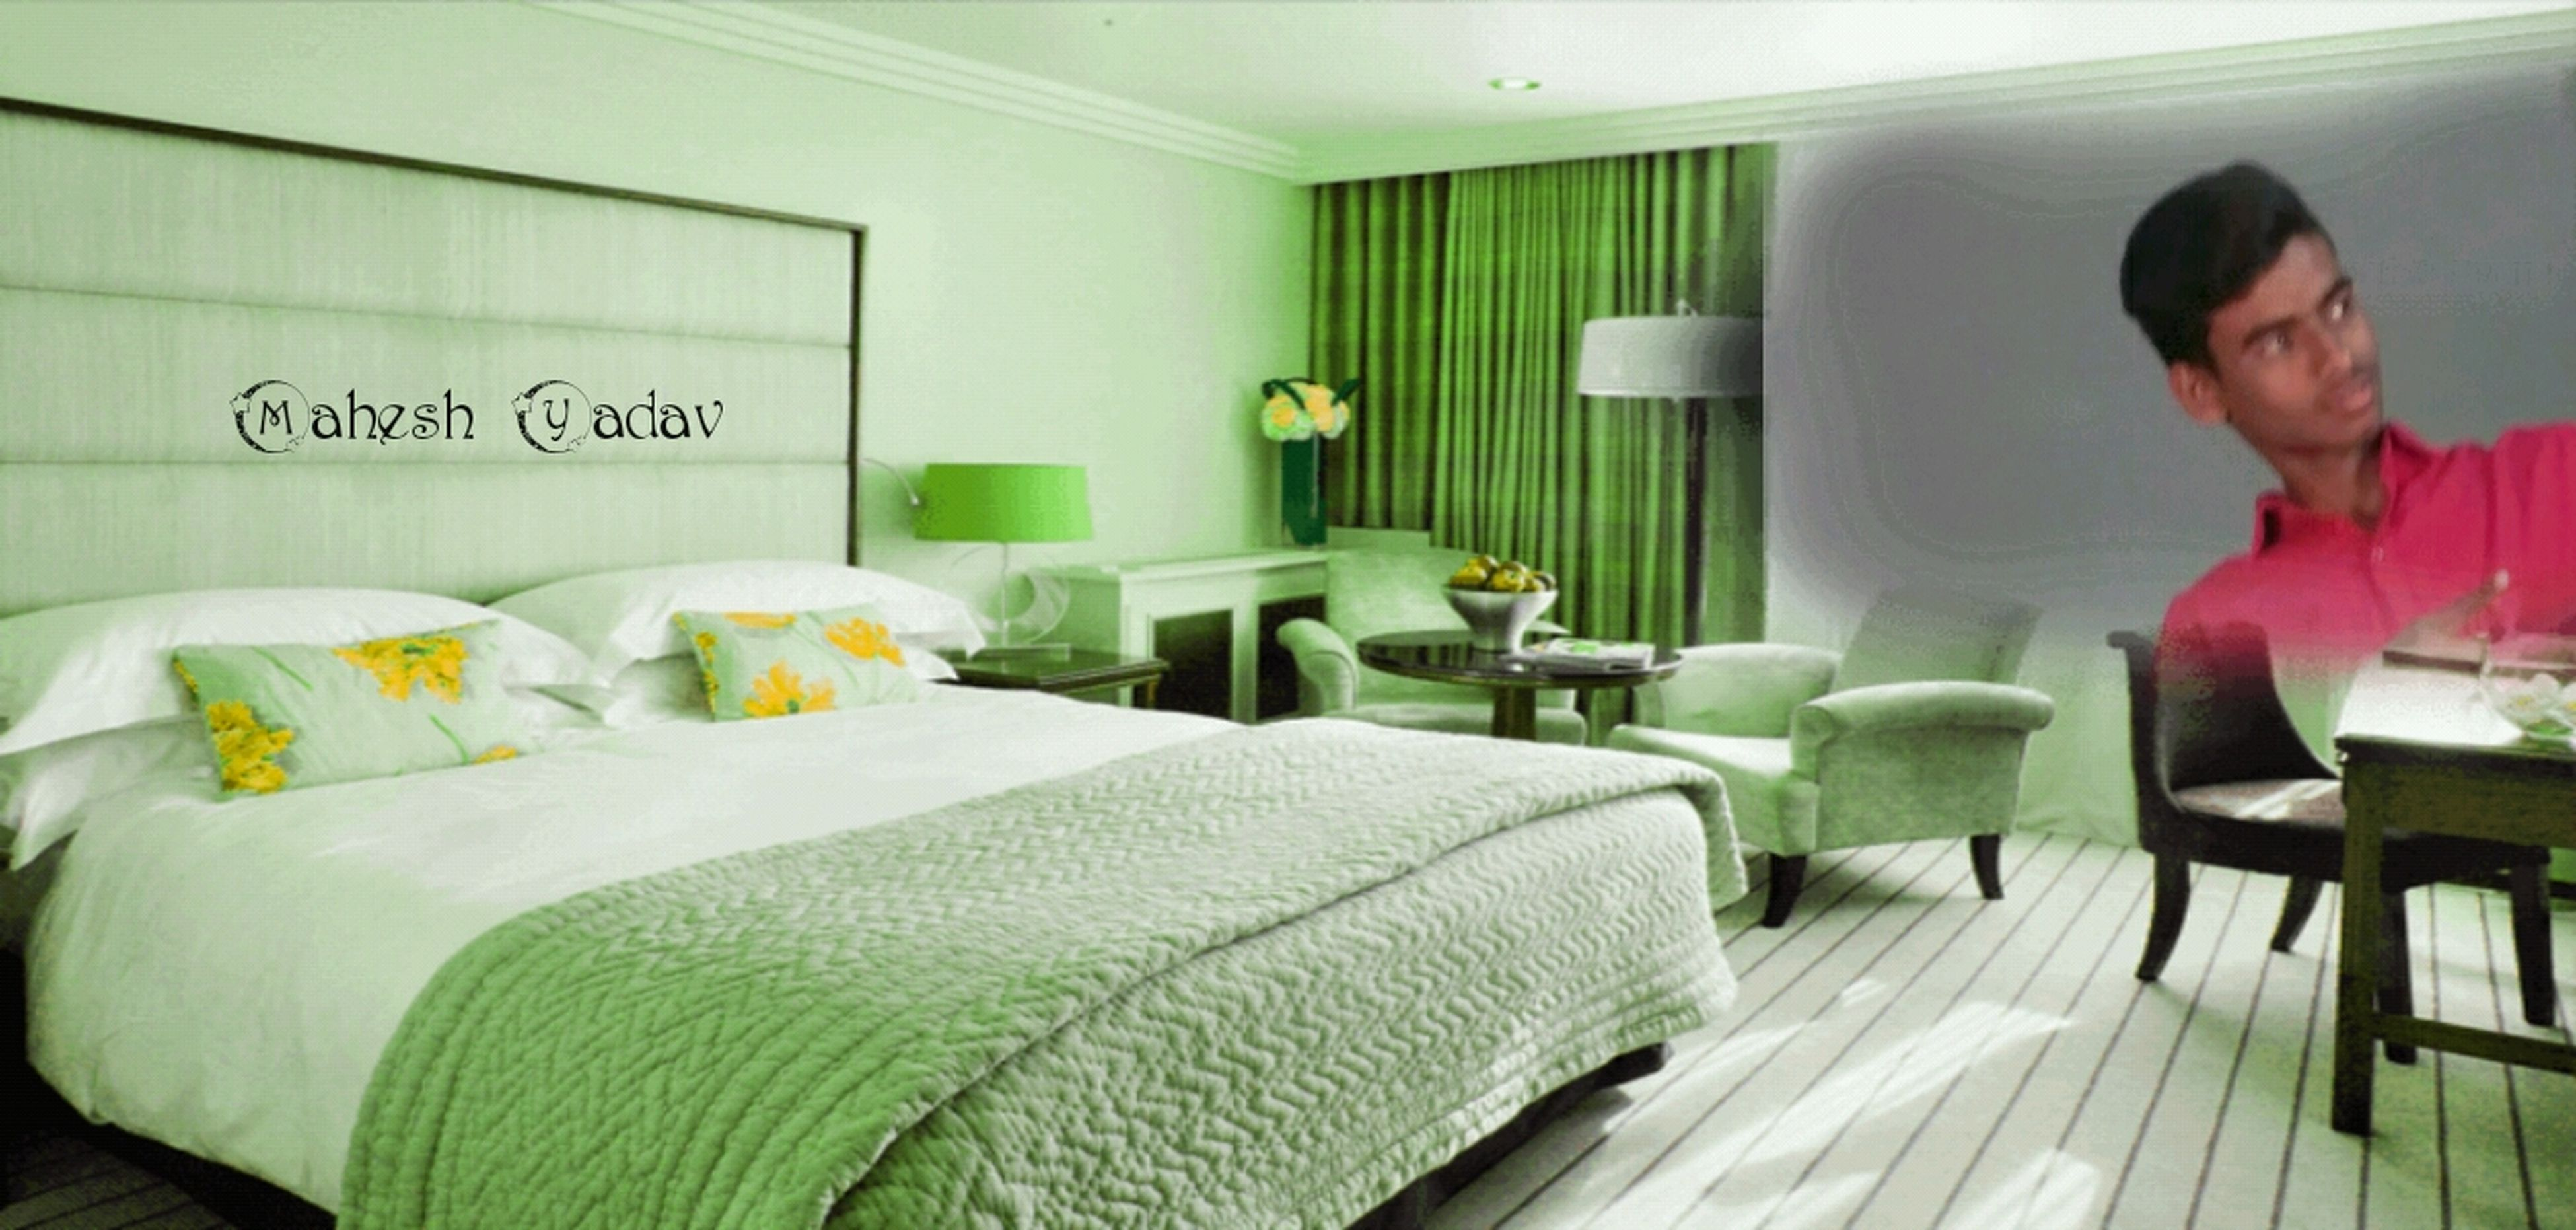 bed, bedroom, indoors, home interior, one person, pillow, adults only, green color, domestic life, people, day, one man only, adult